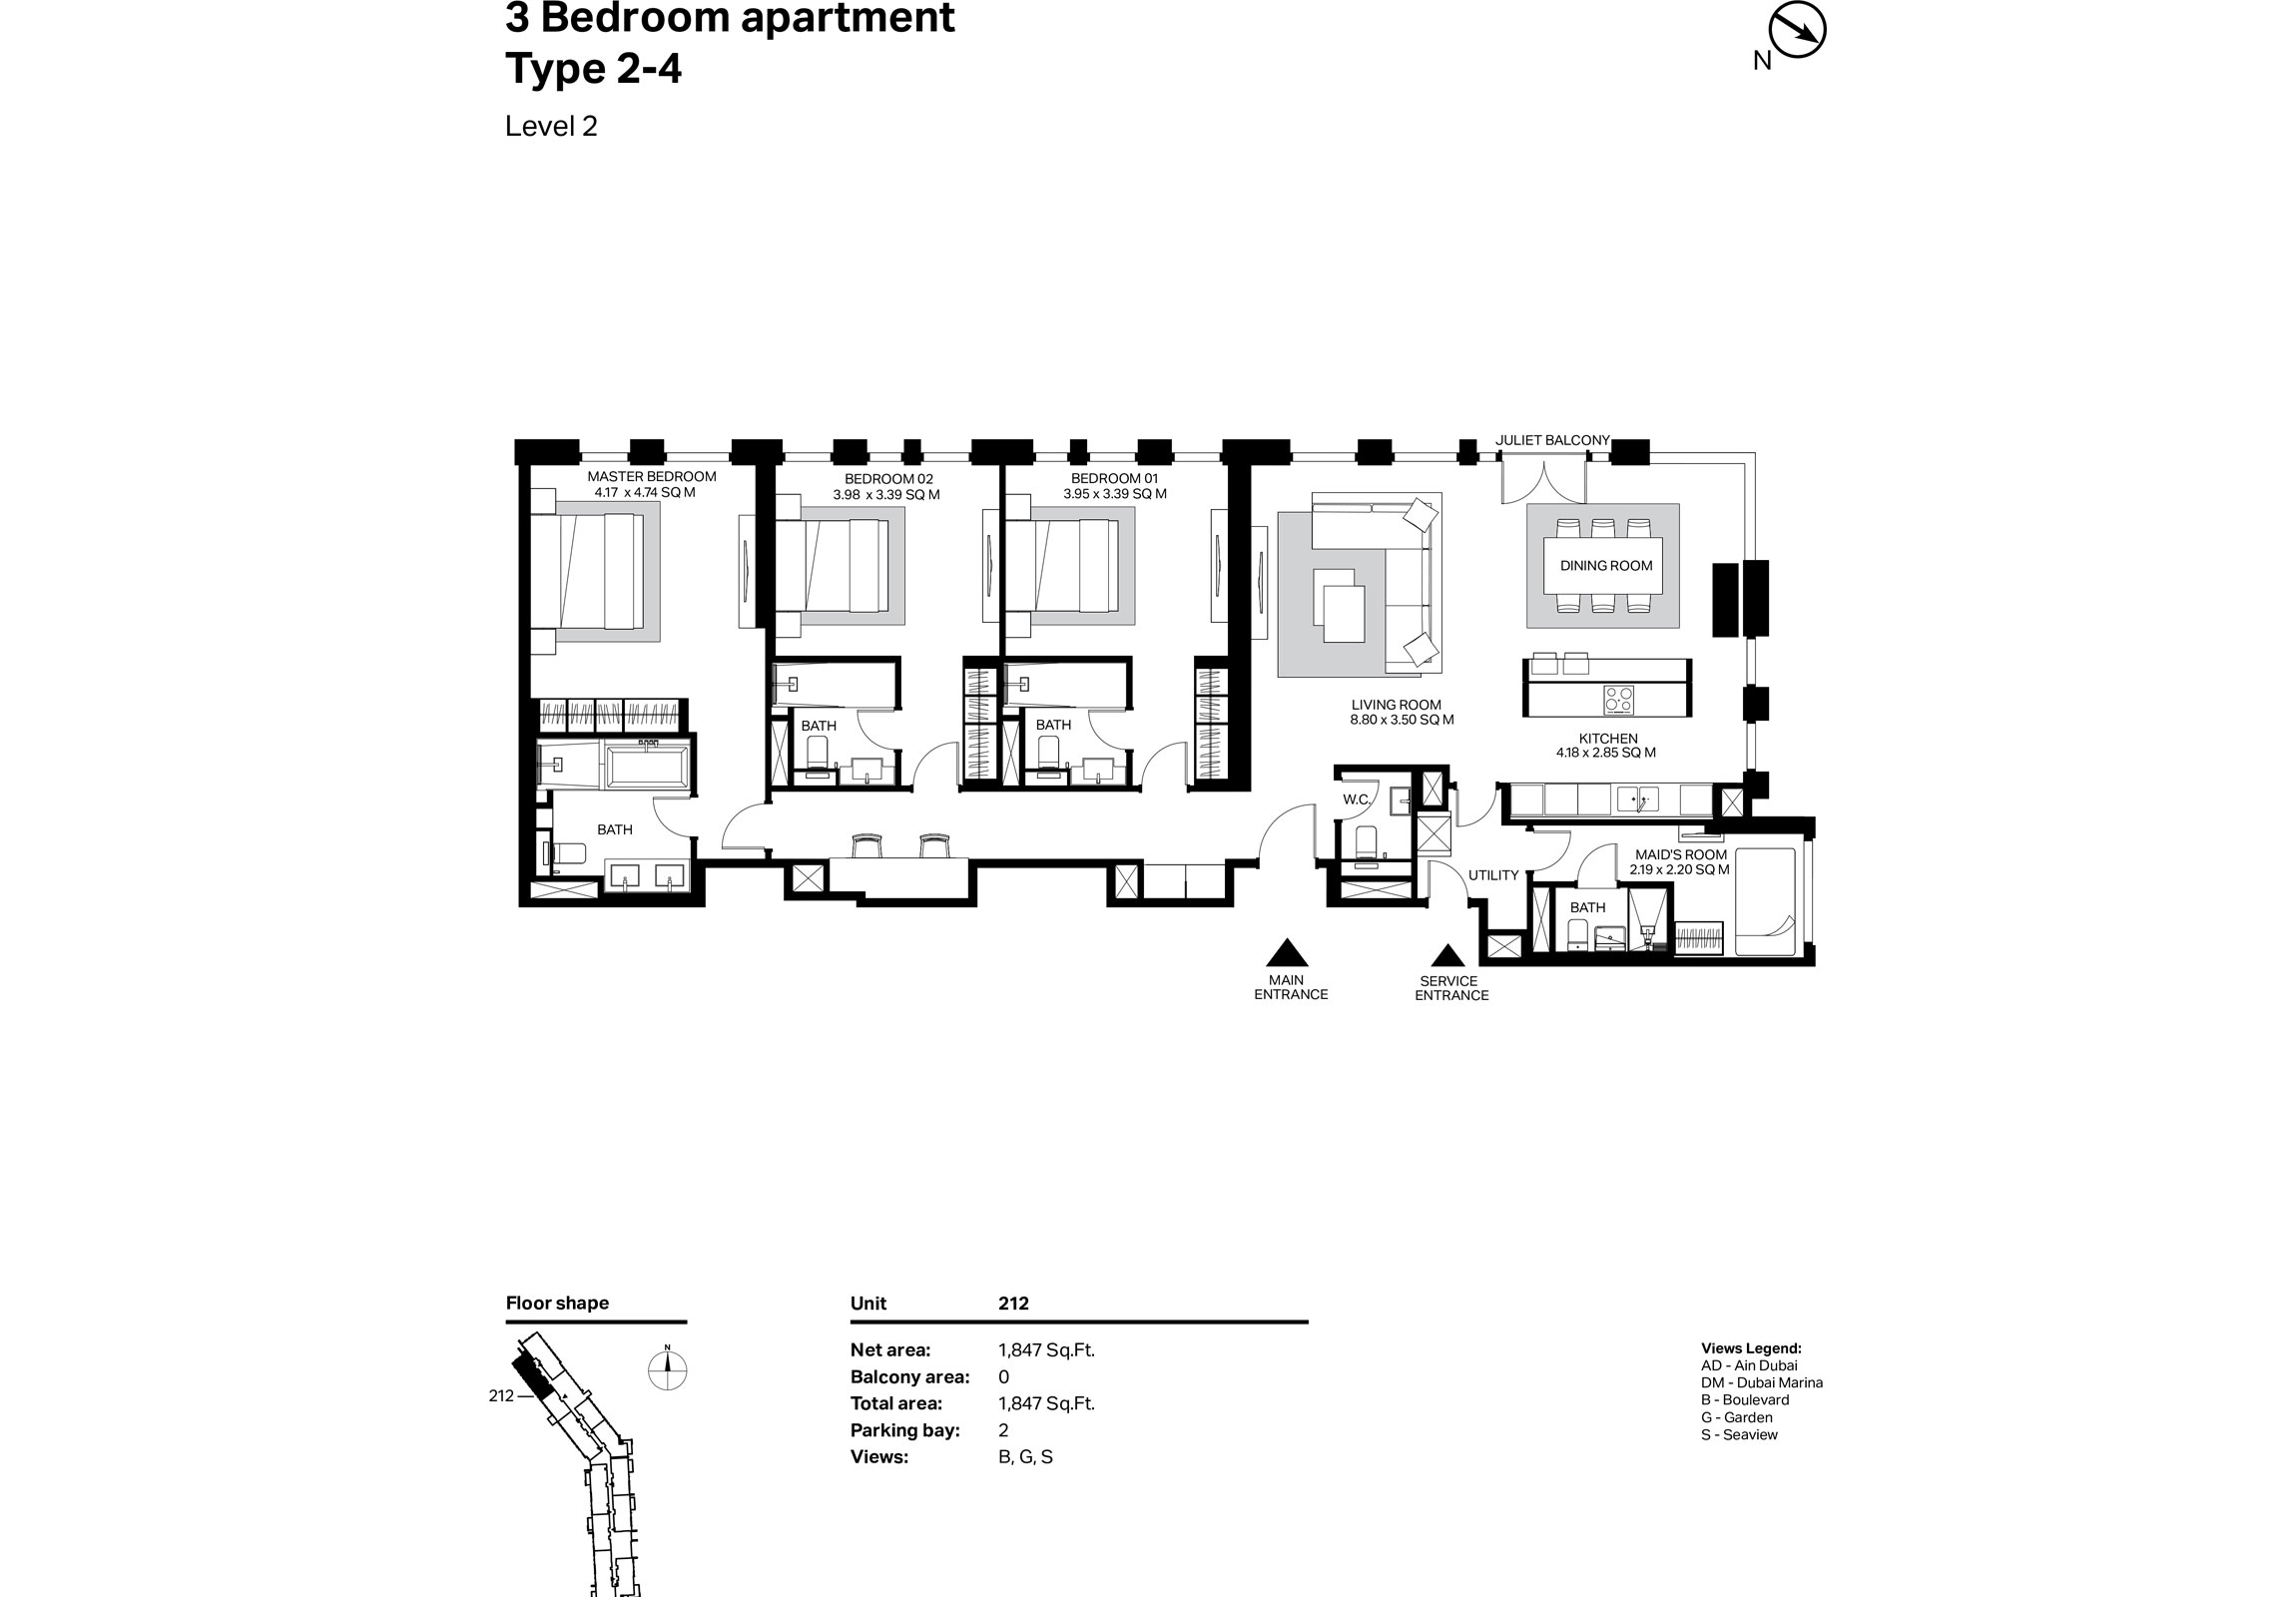 Building 2 - 3 Bedroom Type 2-4 Level 2 Size 1847    sq. ft.